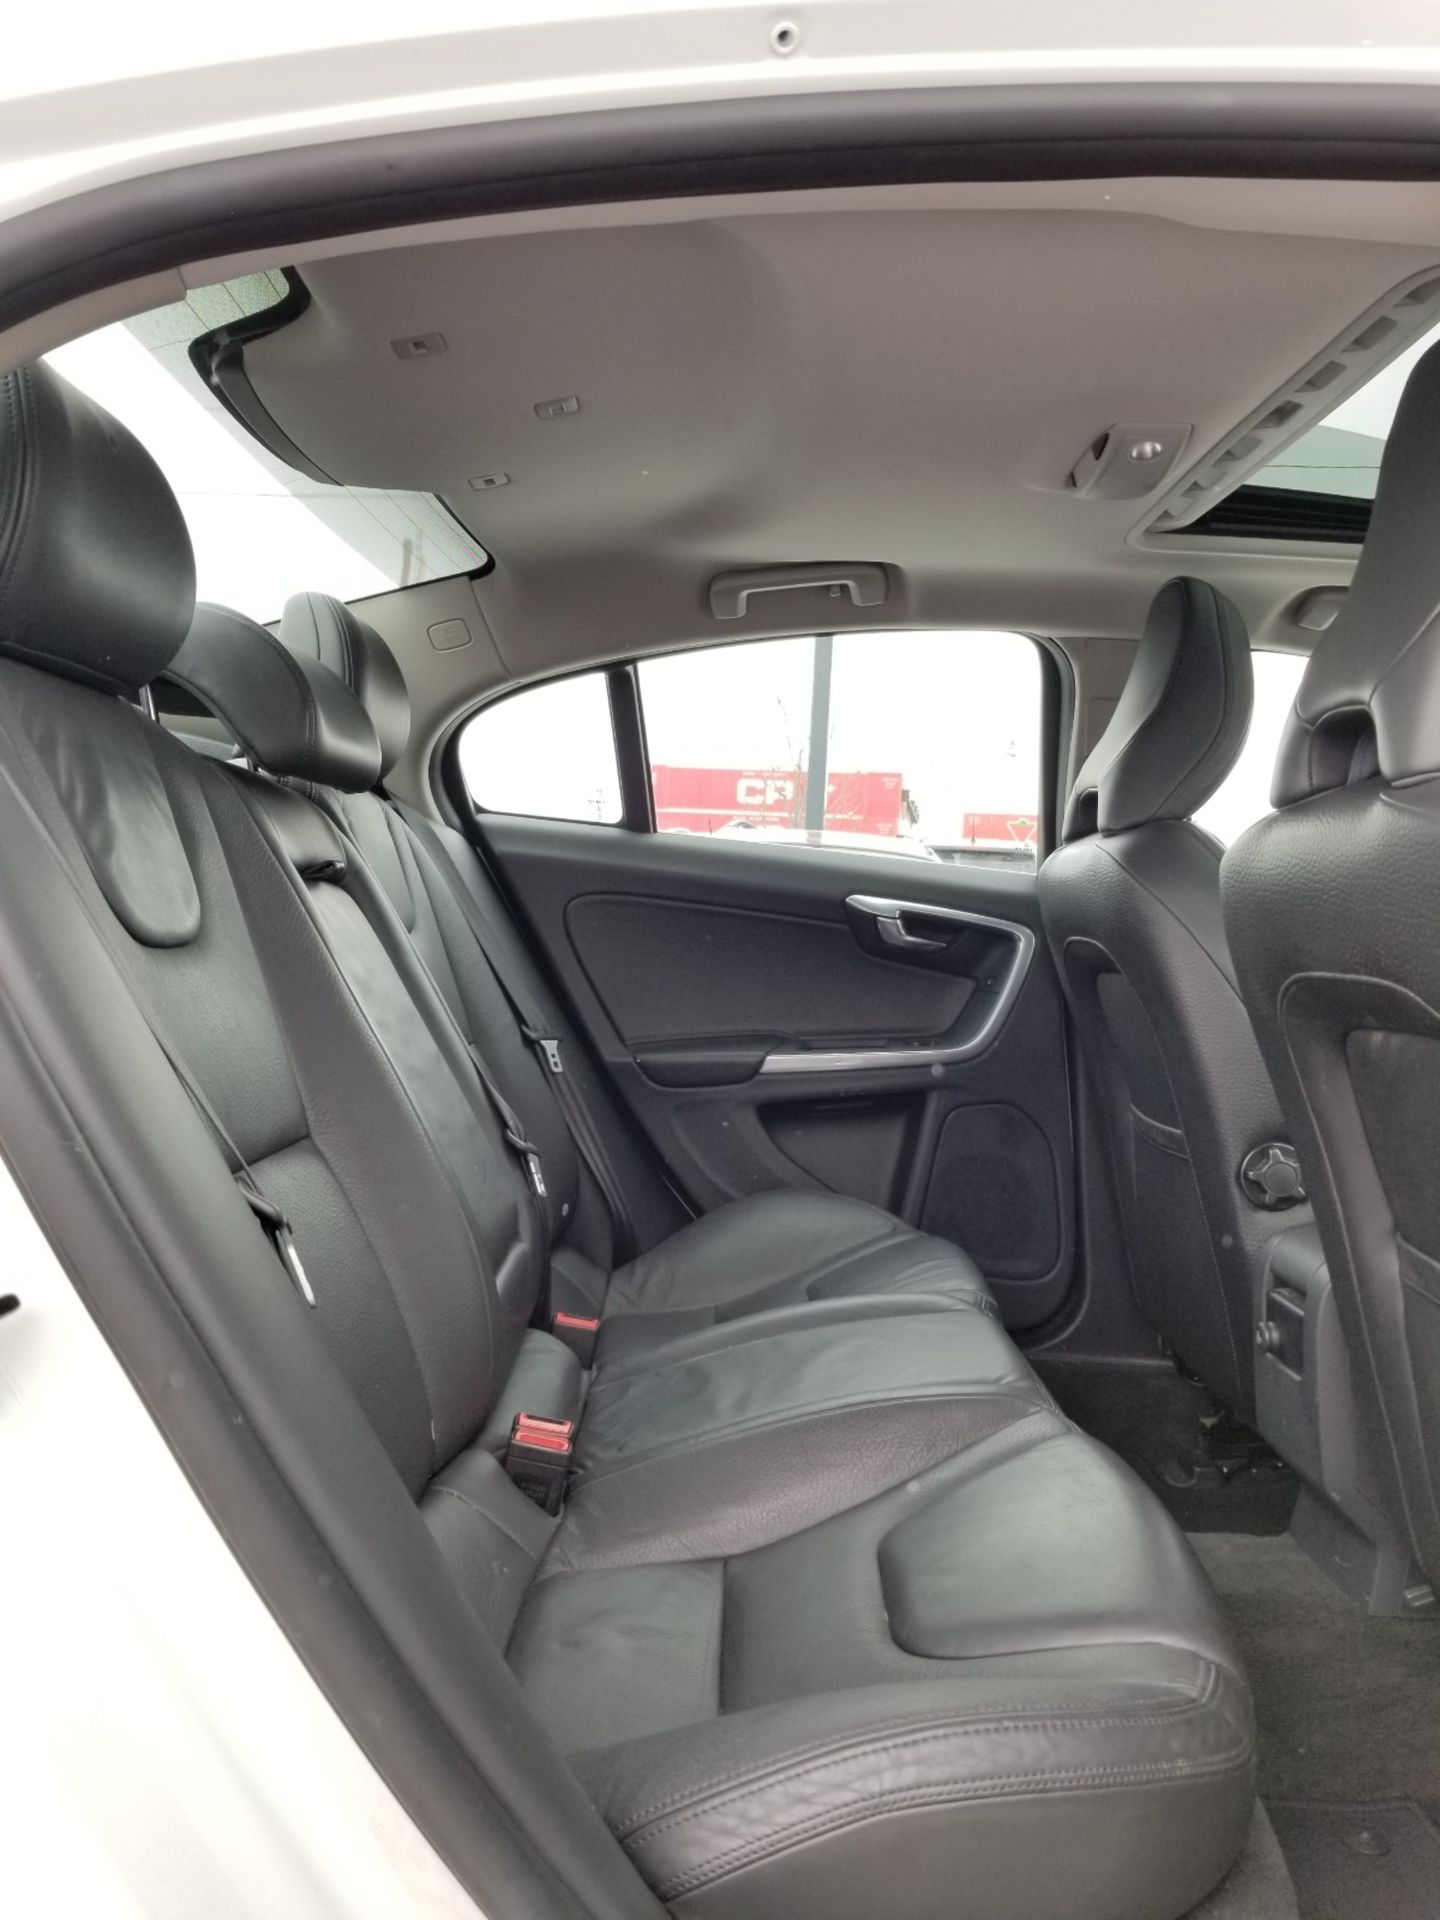 2012 Volvo S60 T6 for sale in Edmonton, Alberta